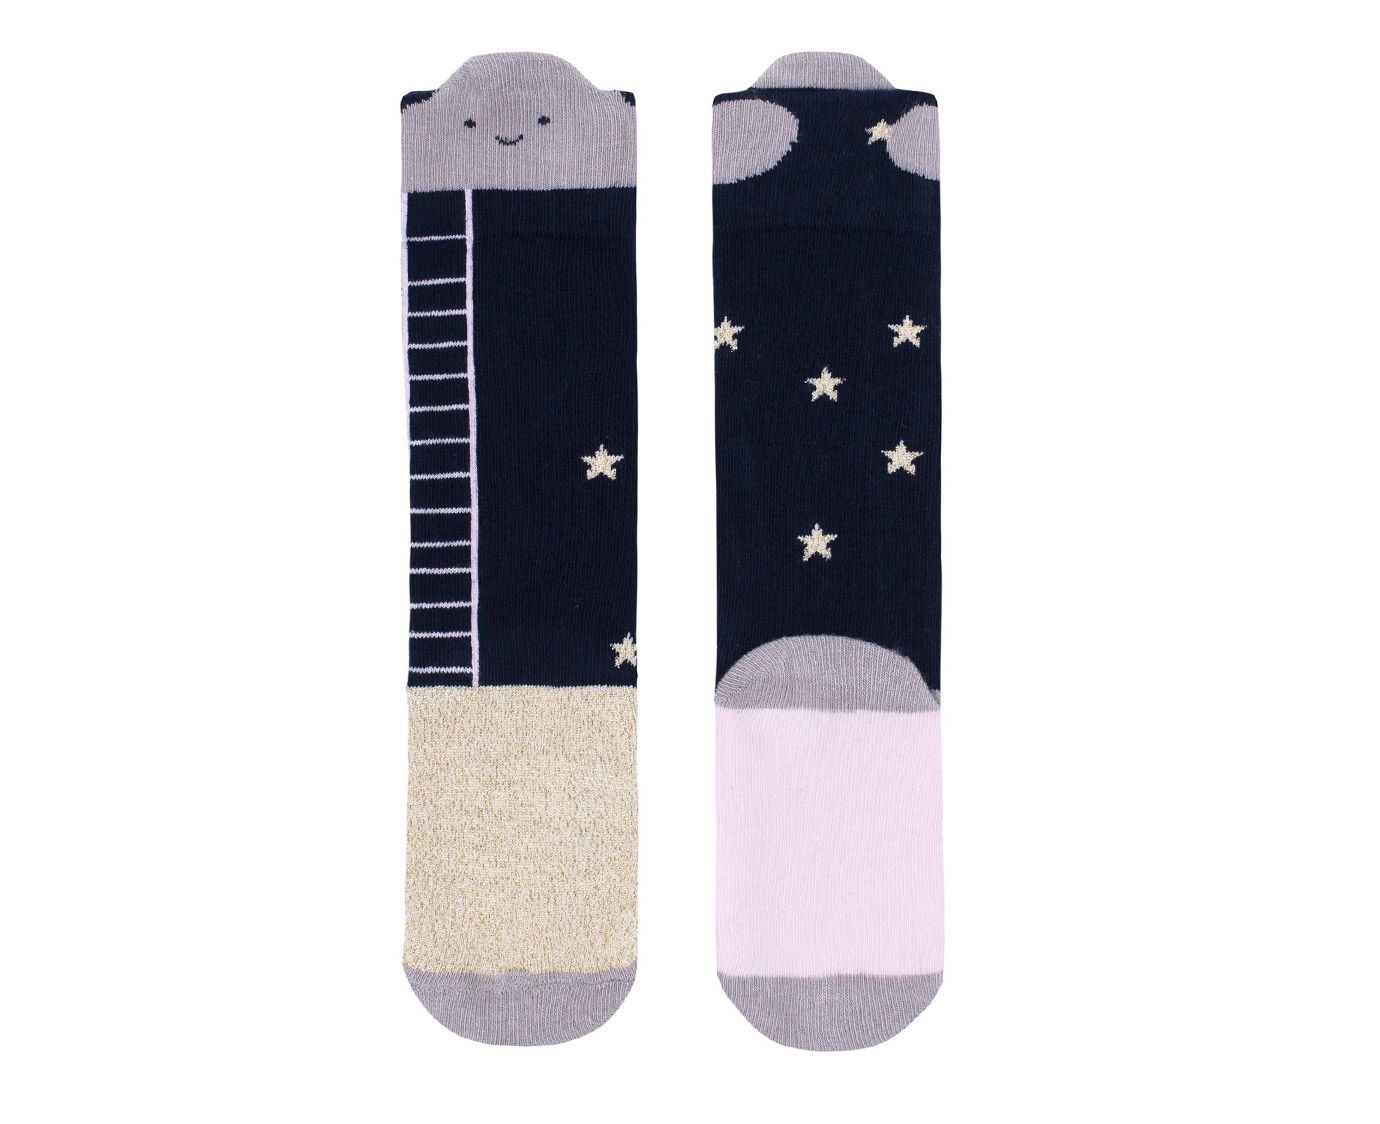 "Kousen ""Reach for the stars"" kleur"